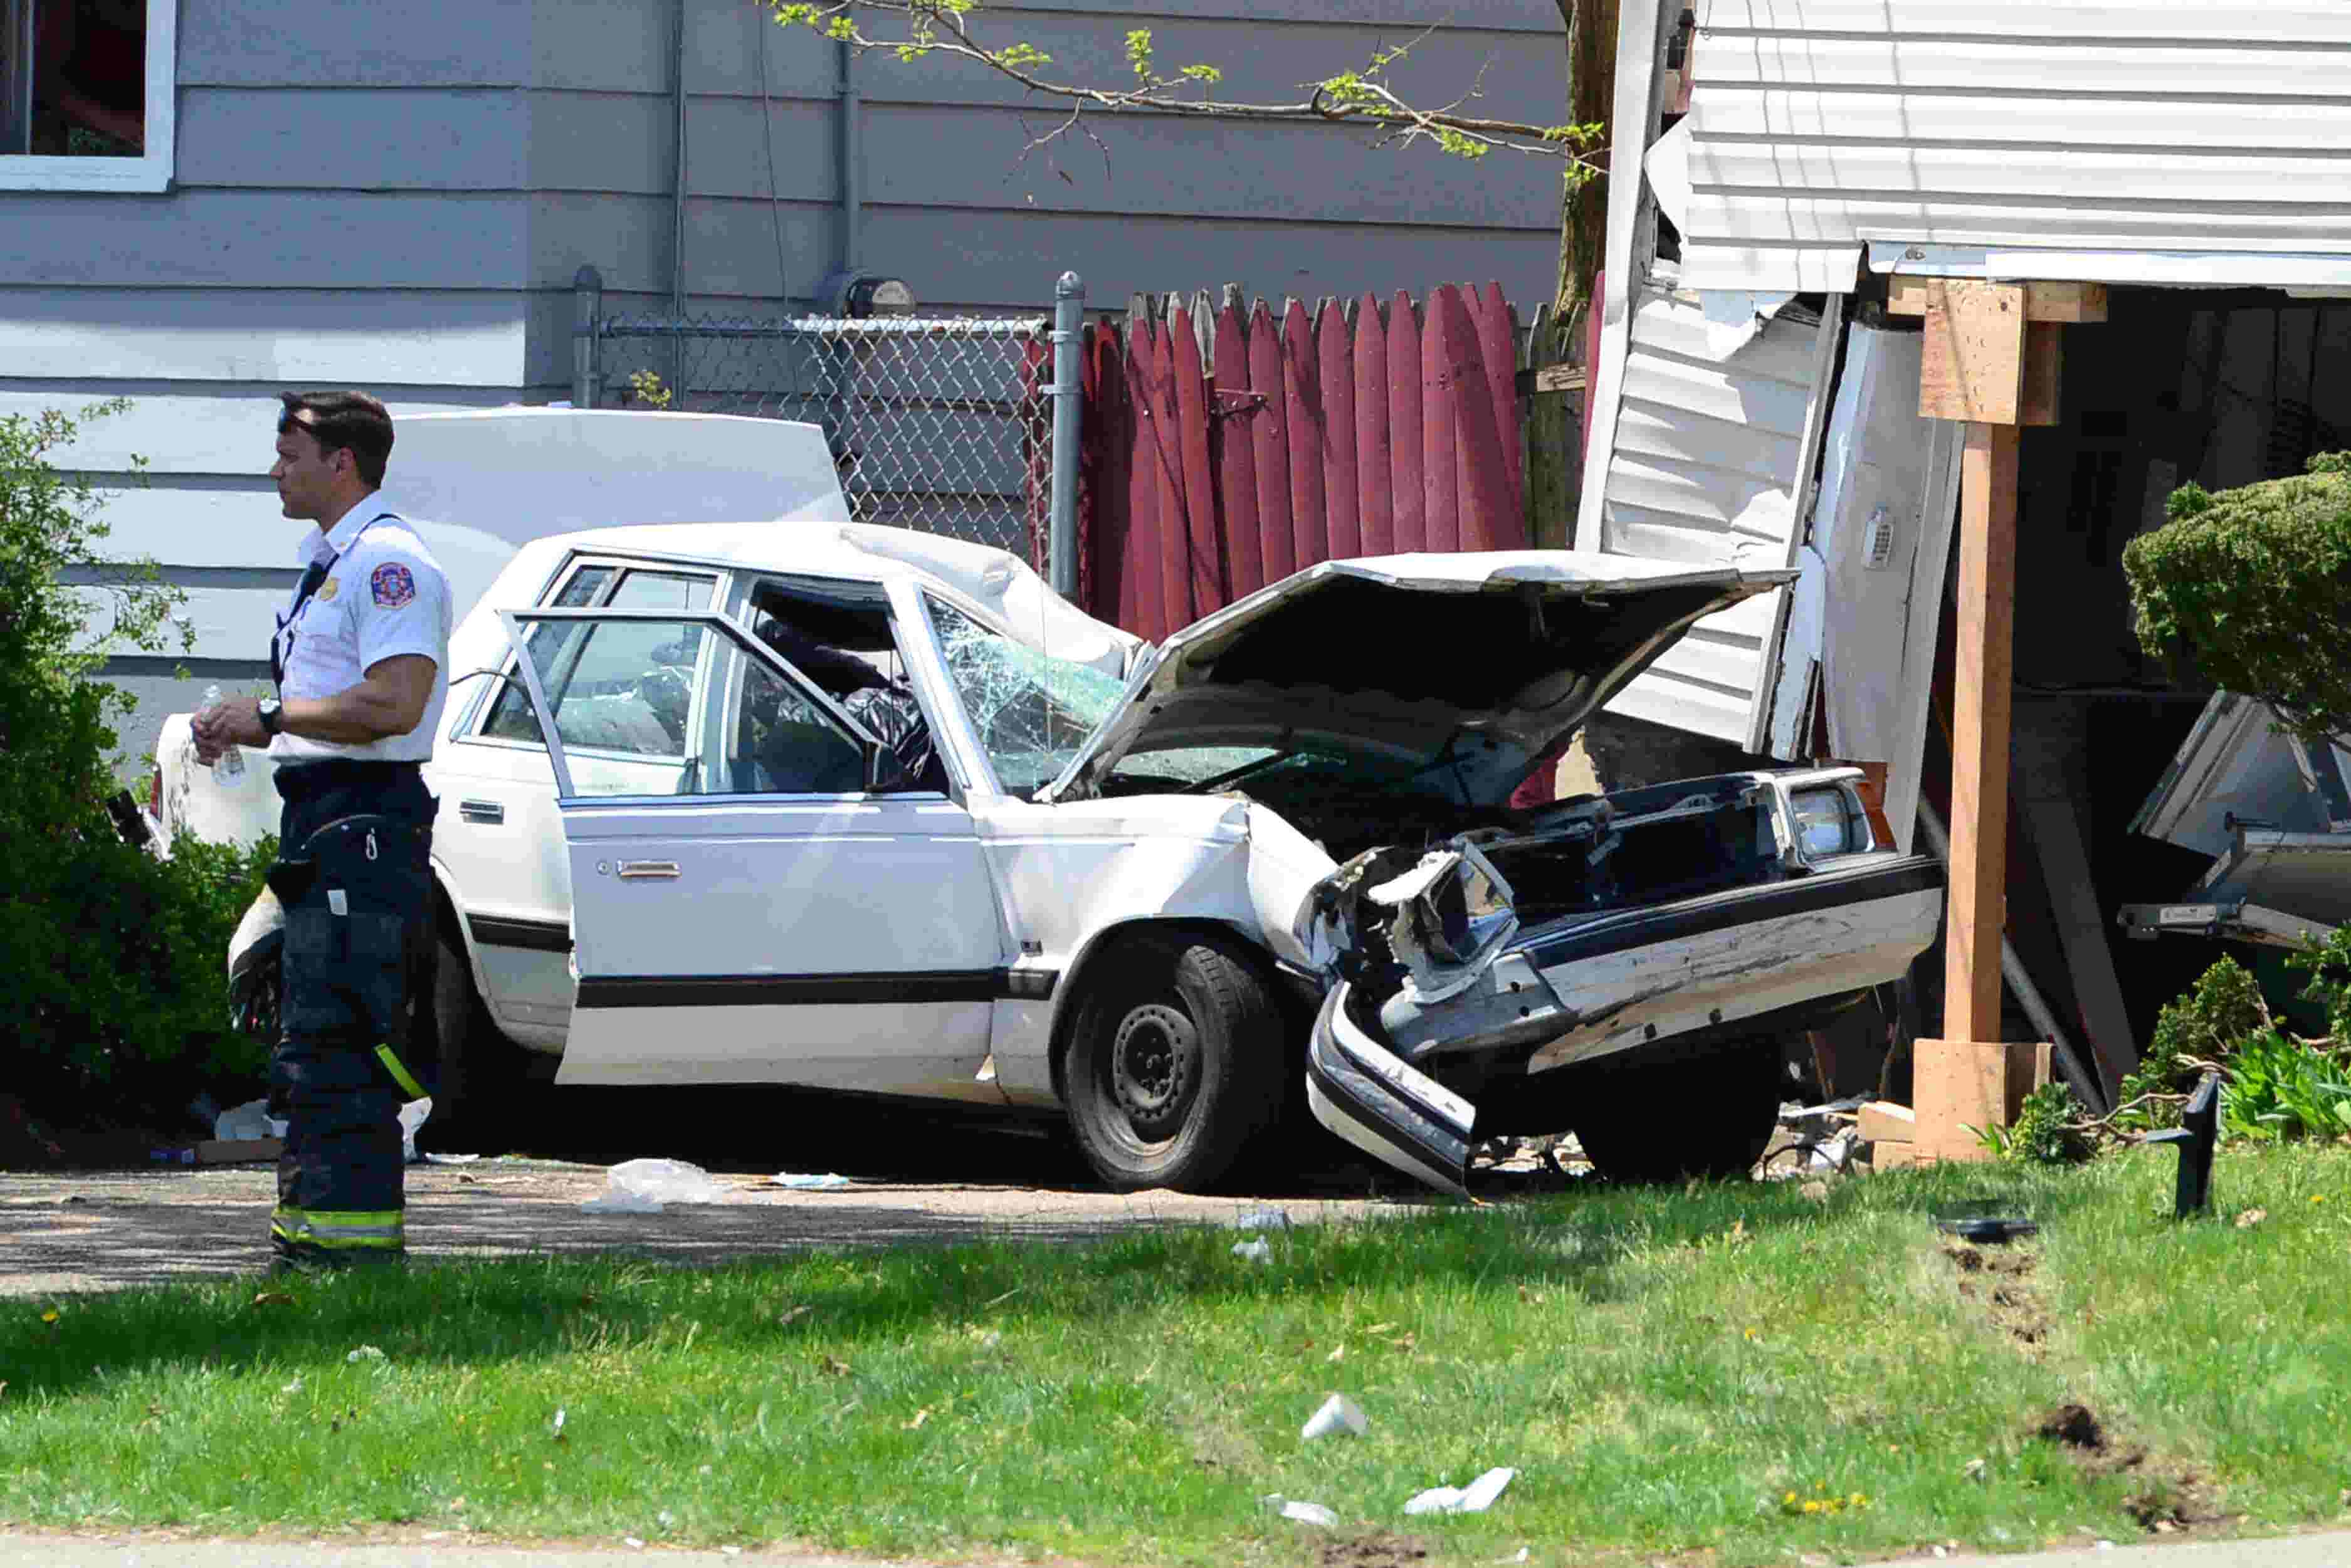 Driver hurt after car rams into house on Route 20 in Paterson